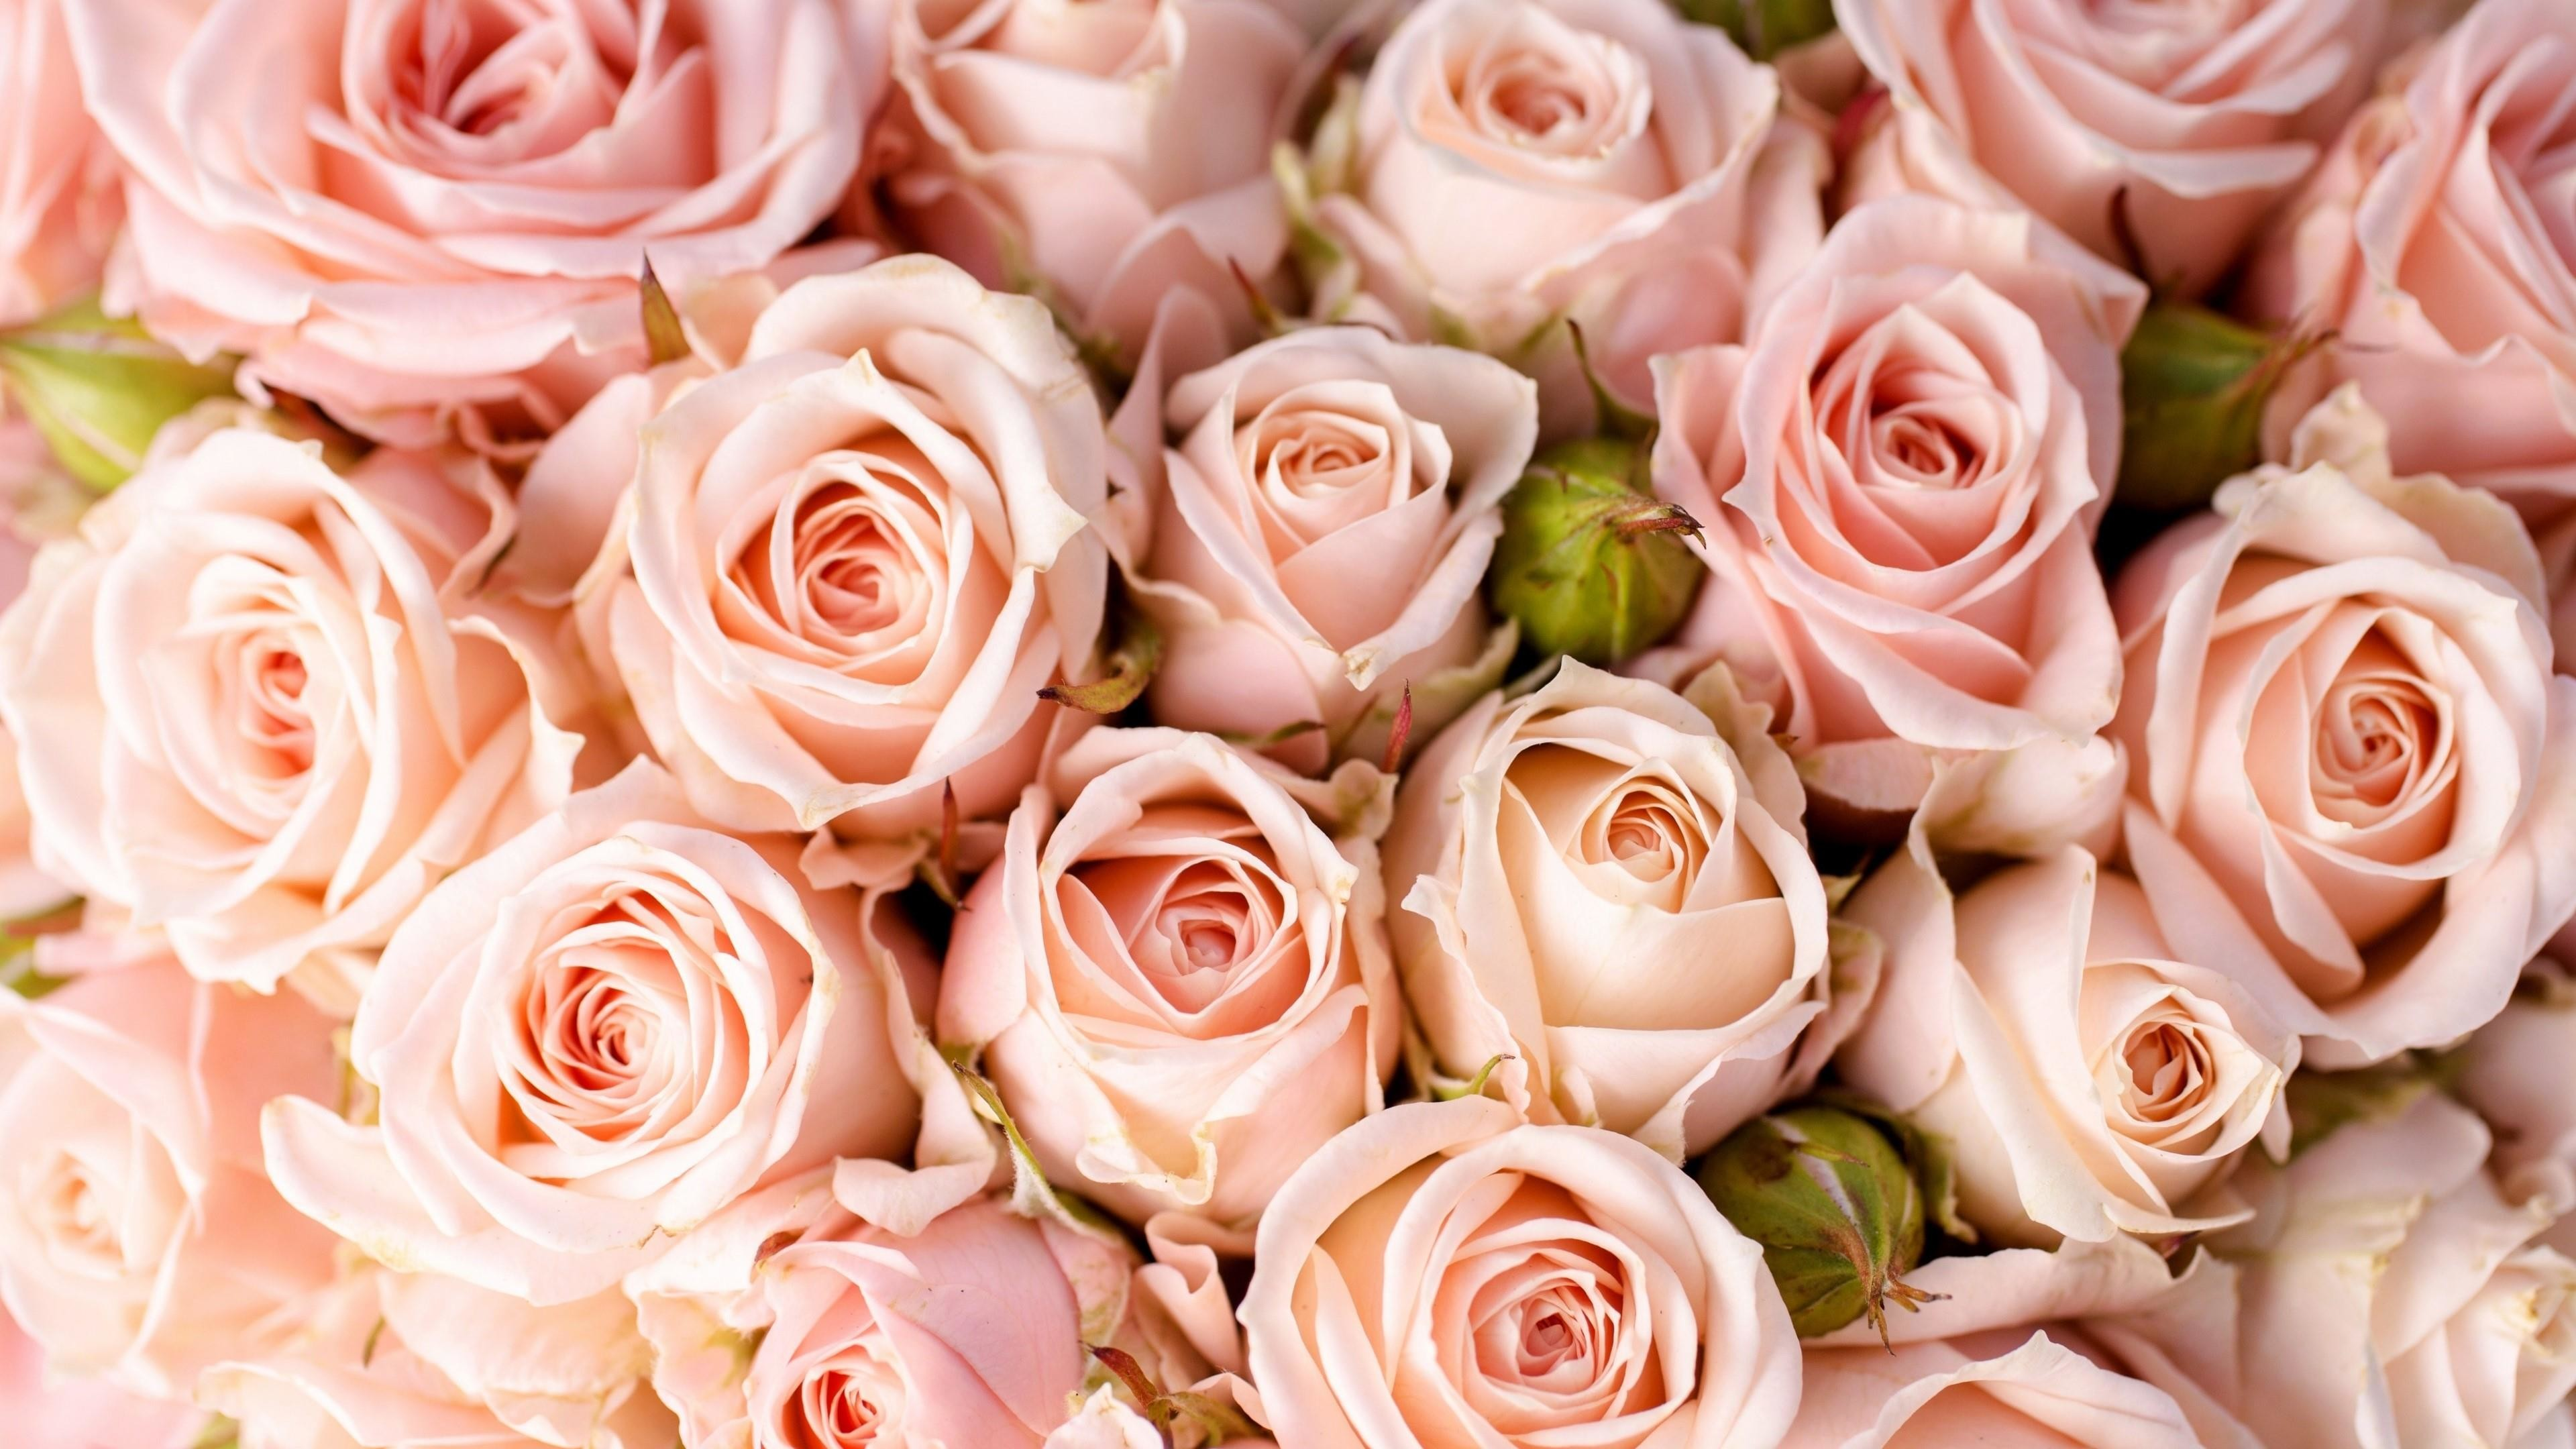 Res: 3840x2160, Pale Pink Rose Wallpaper | Wallpaper Studio 10 | Tens of thousands HD and  UltraHD wallpapers for Android, Windows and Xbox